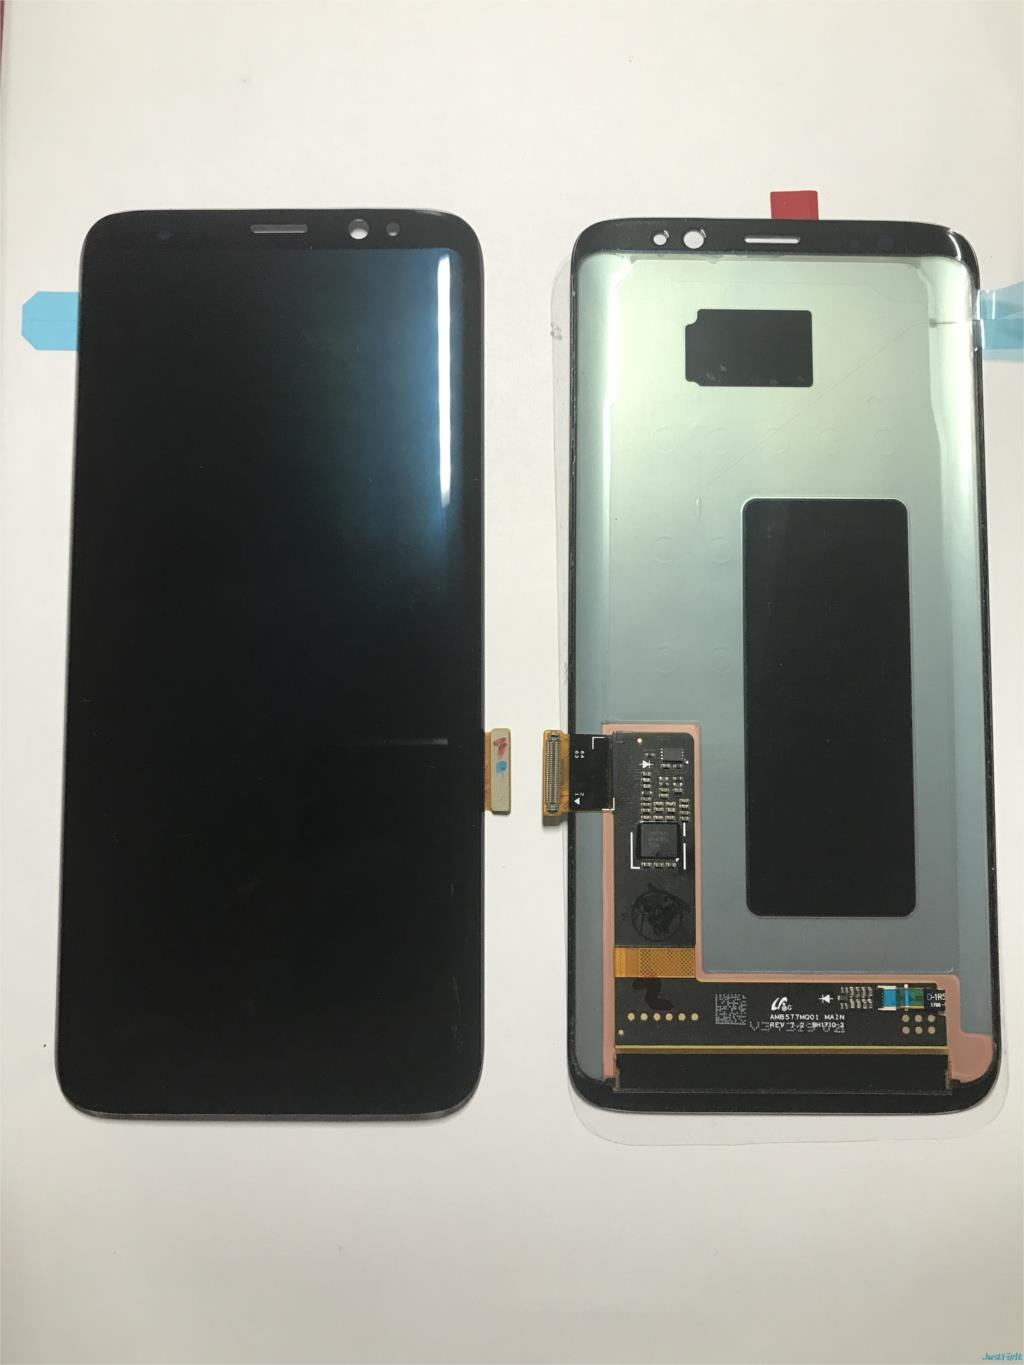 Original For Samsung Galaxy S8 PLUS G950 G955 G950f G955f Burn-in Shadow Lcd Display With Touch Screen Digitizer Super AMOLED